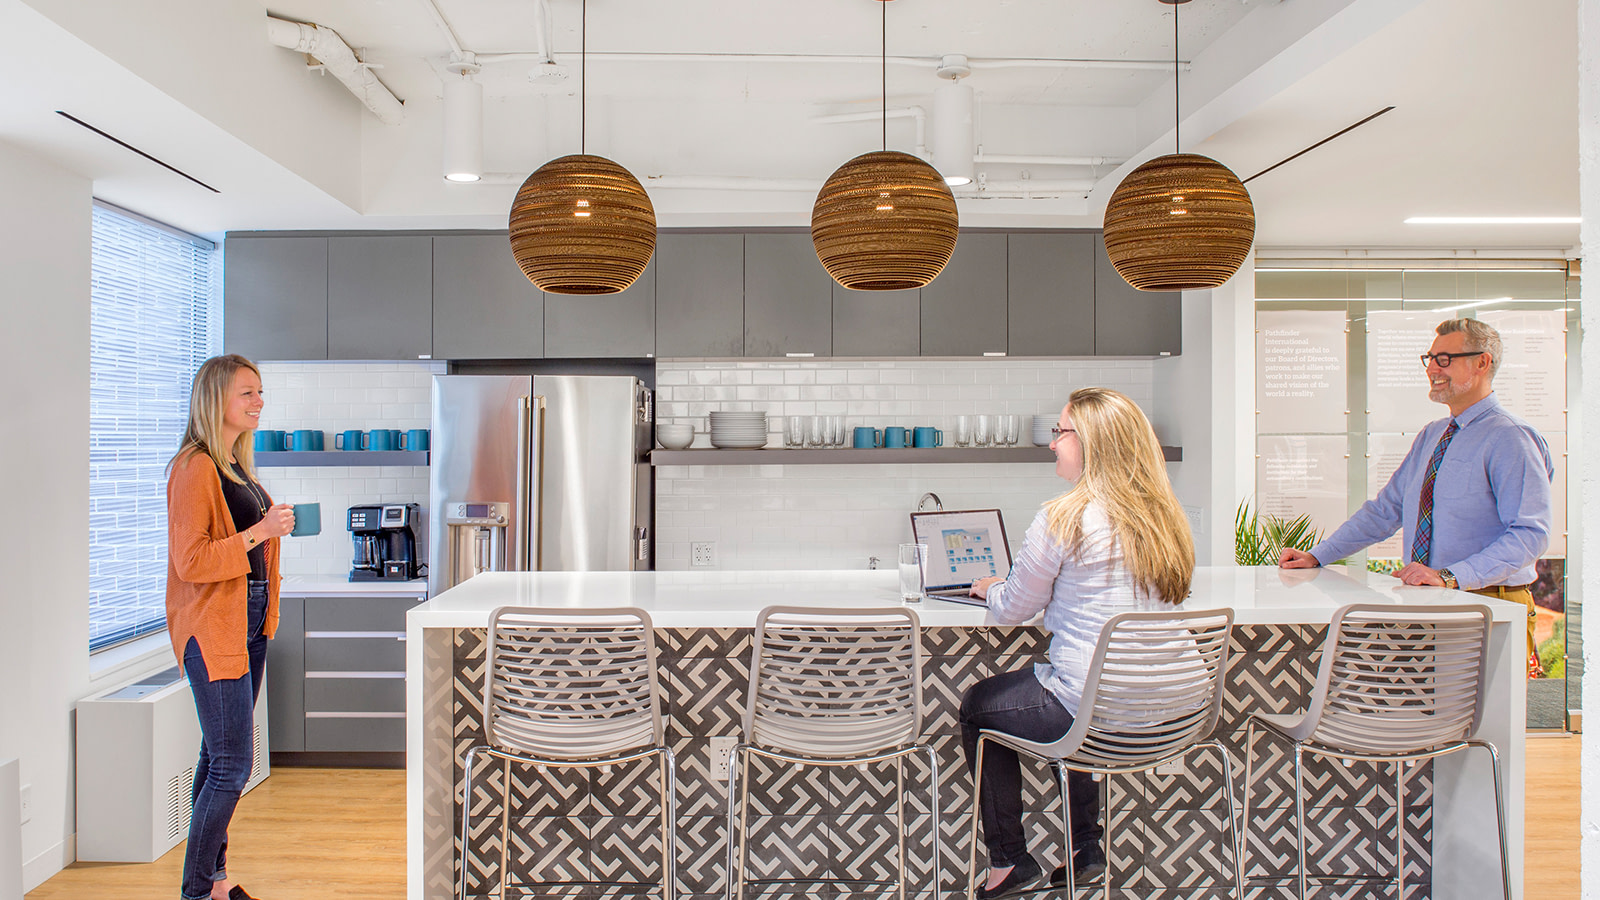 Cafe and kitchen area with work space in DC